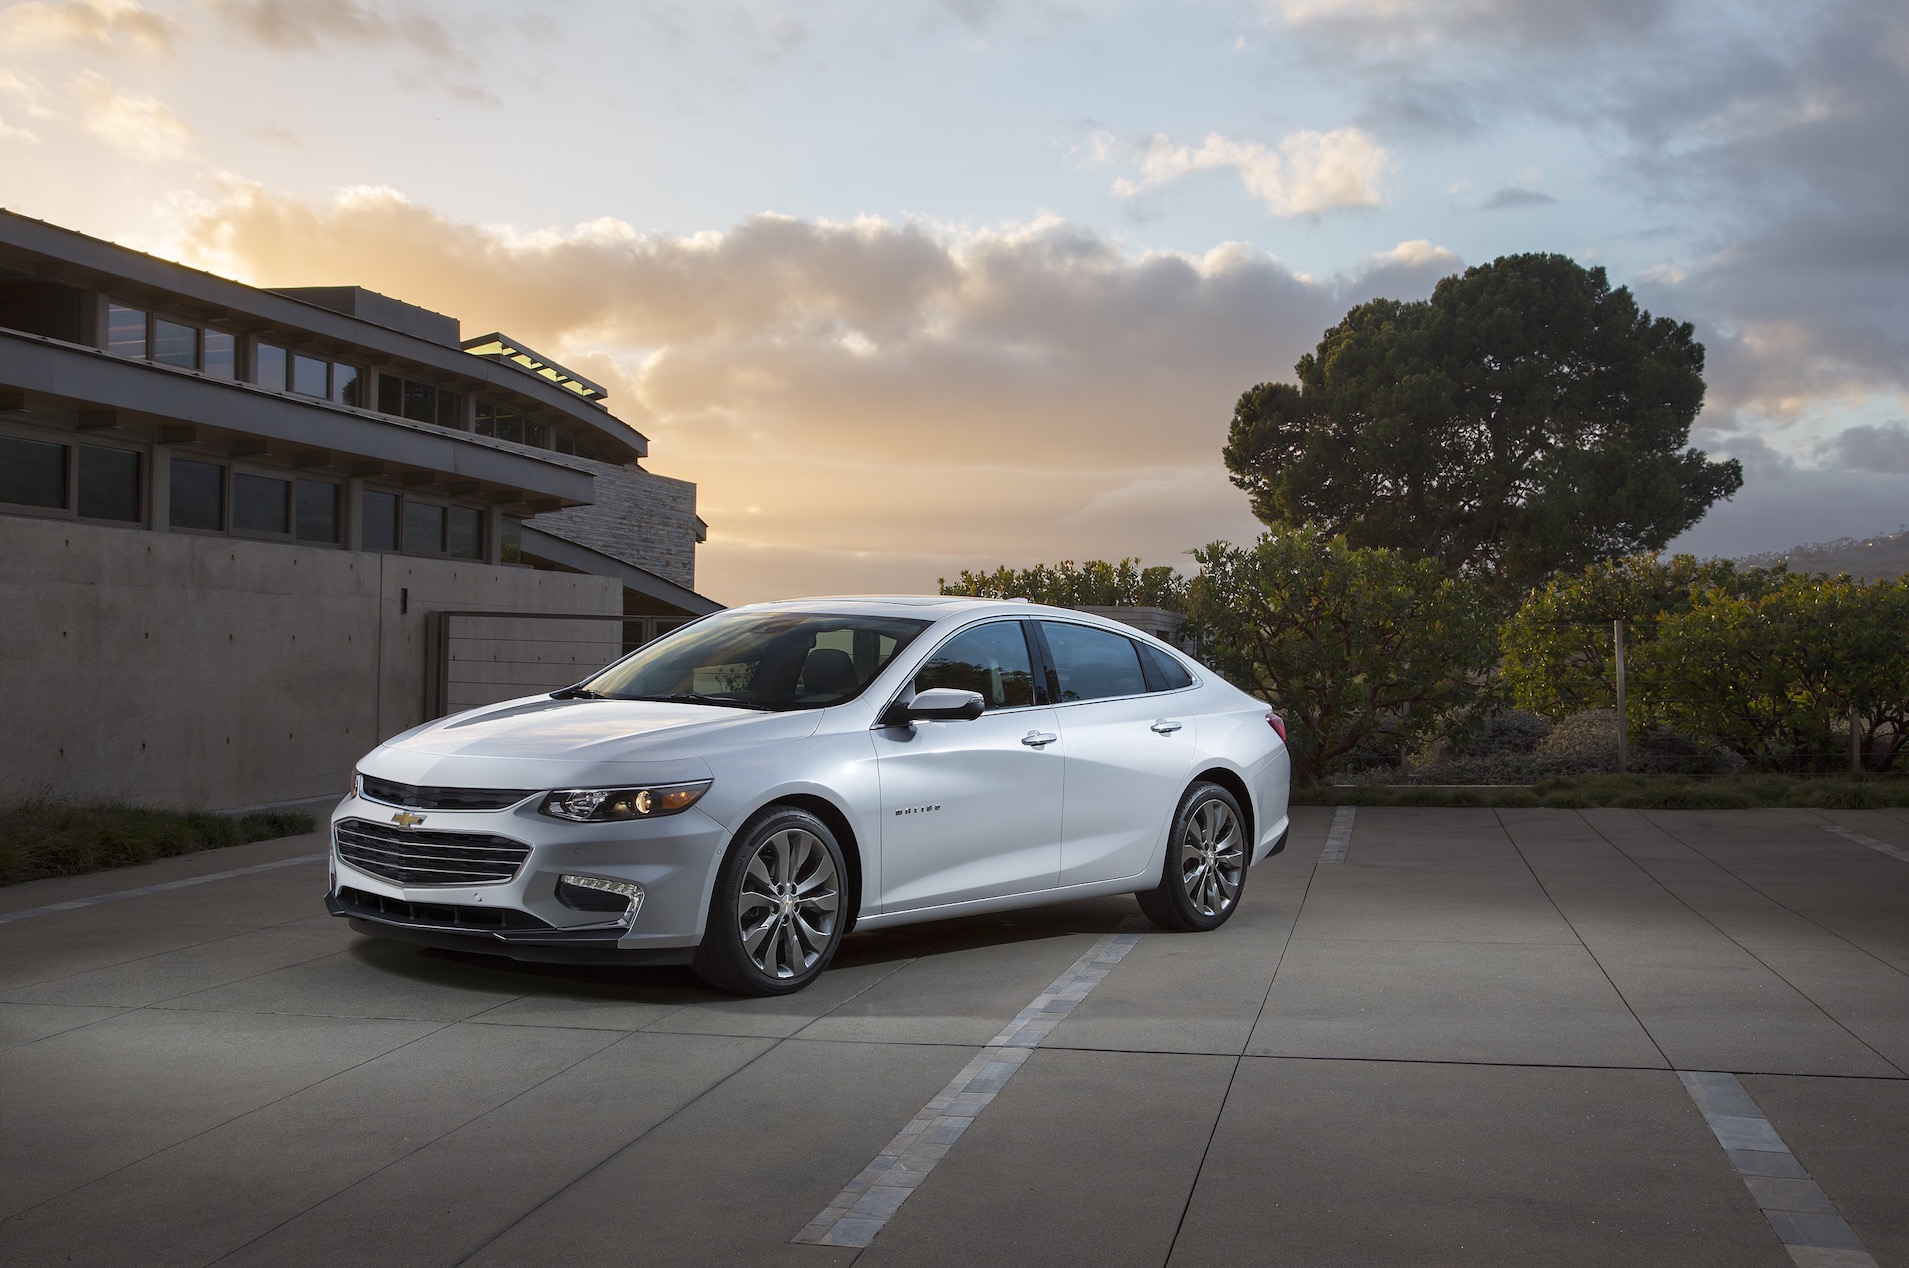 Chevy Malibu Mpg >> 47 Mpg Chevrolet Malibu Hybrid Volt S Sibling Without A Plug May Be